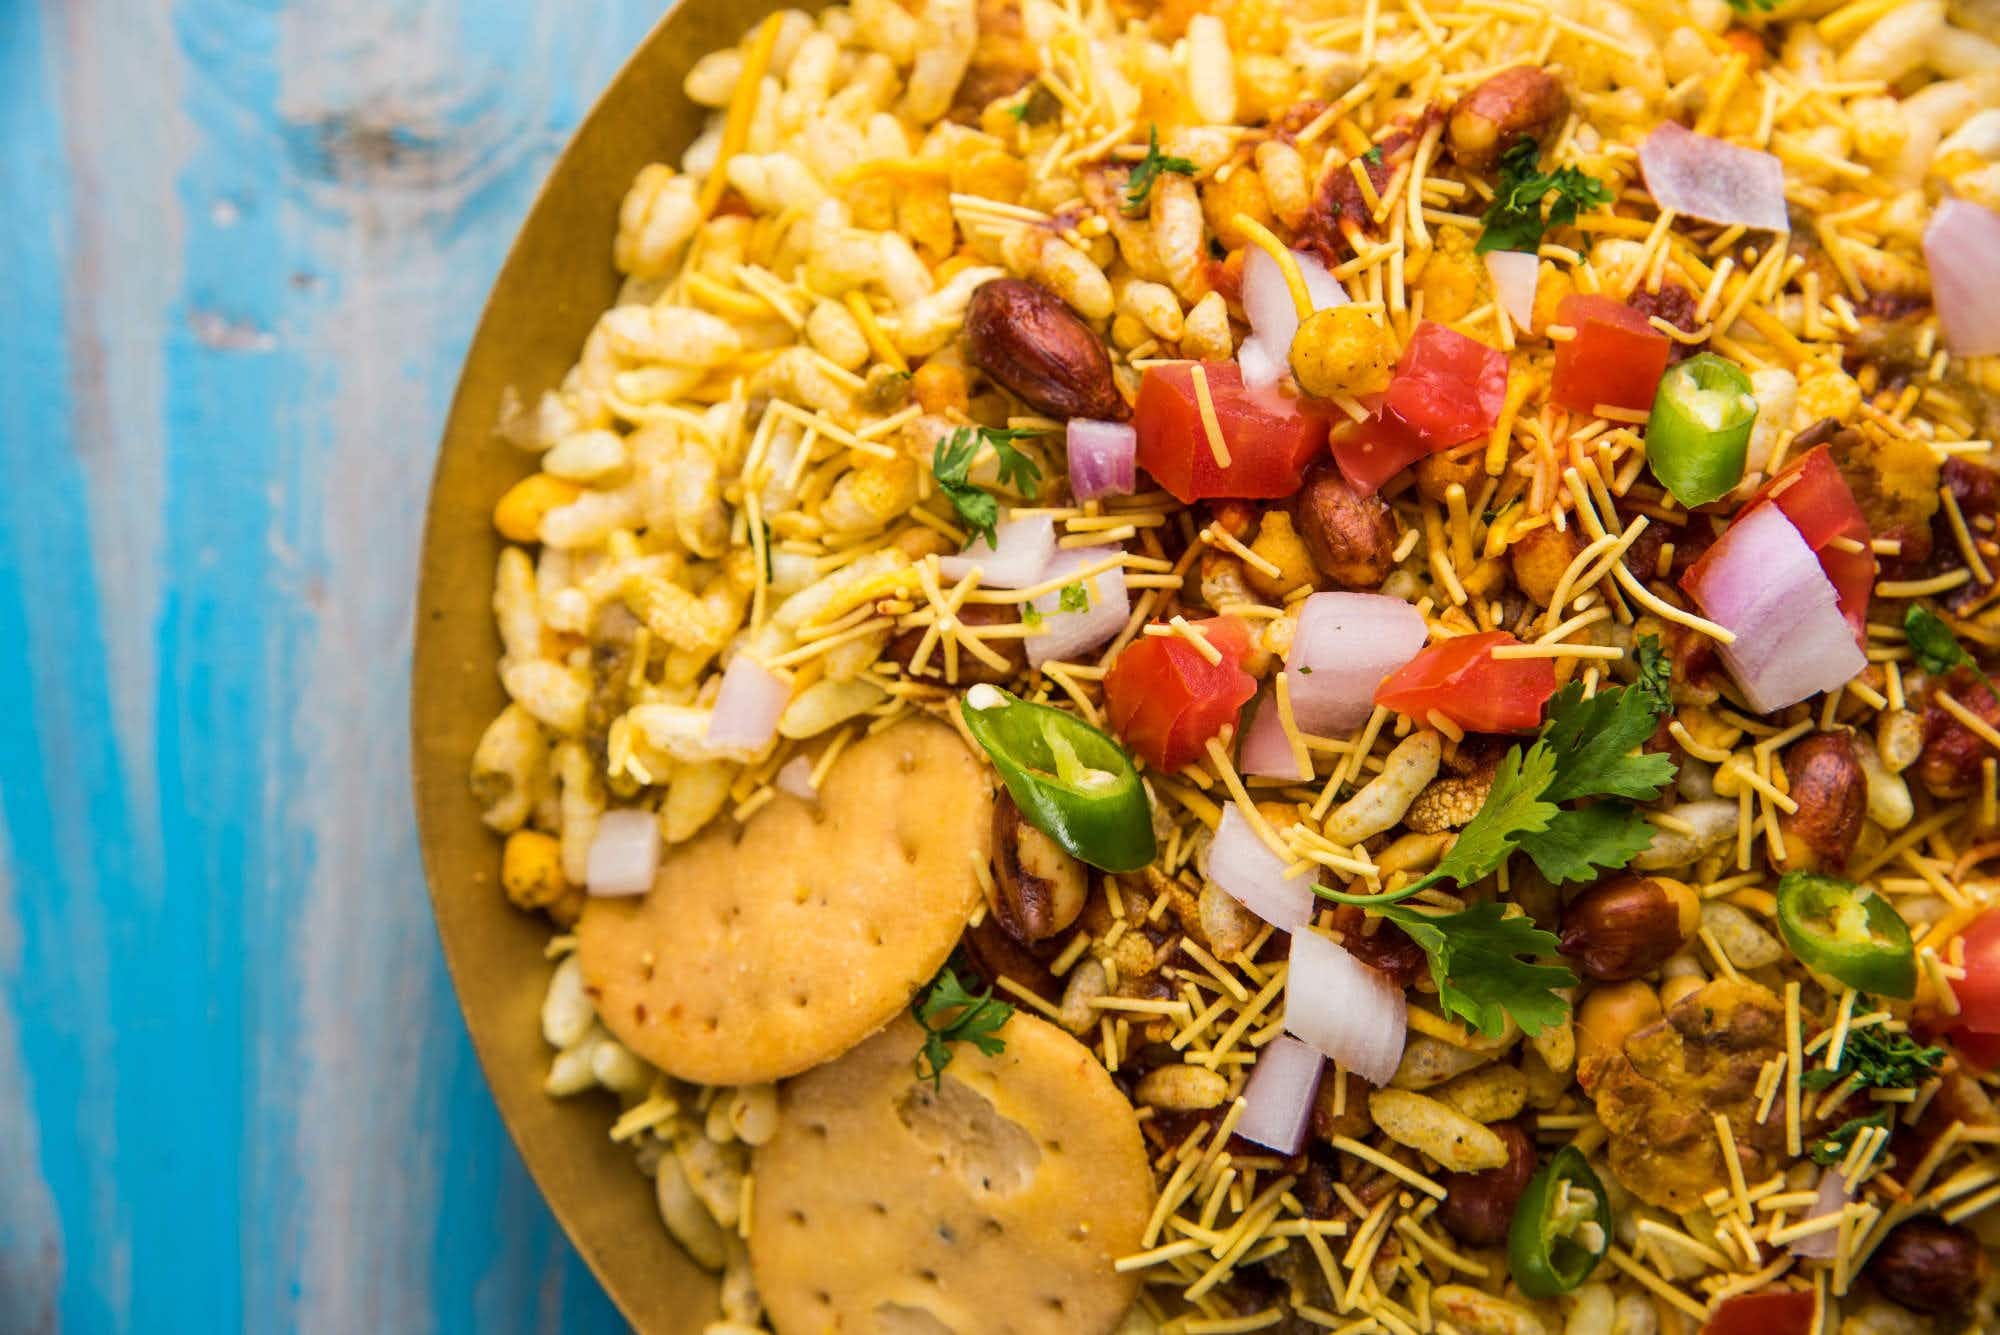 Eat the streets - discover South Delhi's best street food